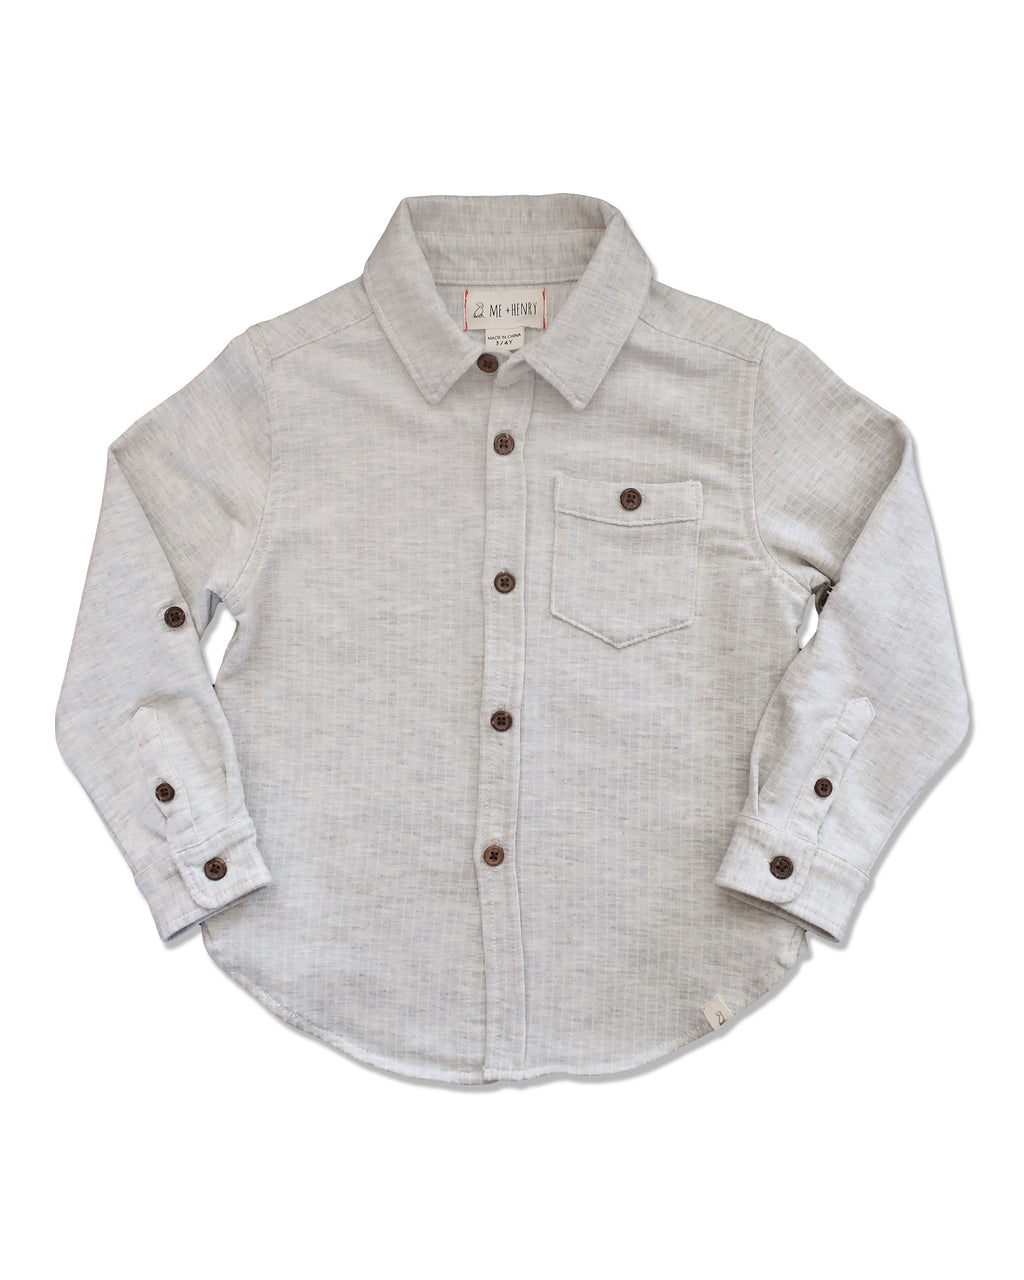 front image of grey jersey shirt for boys with long sleeves